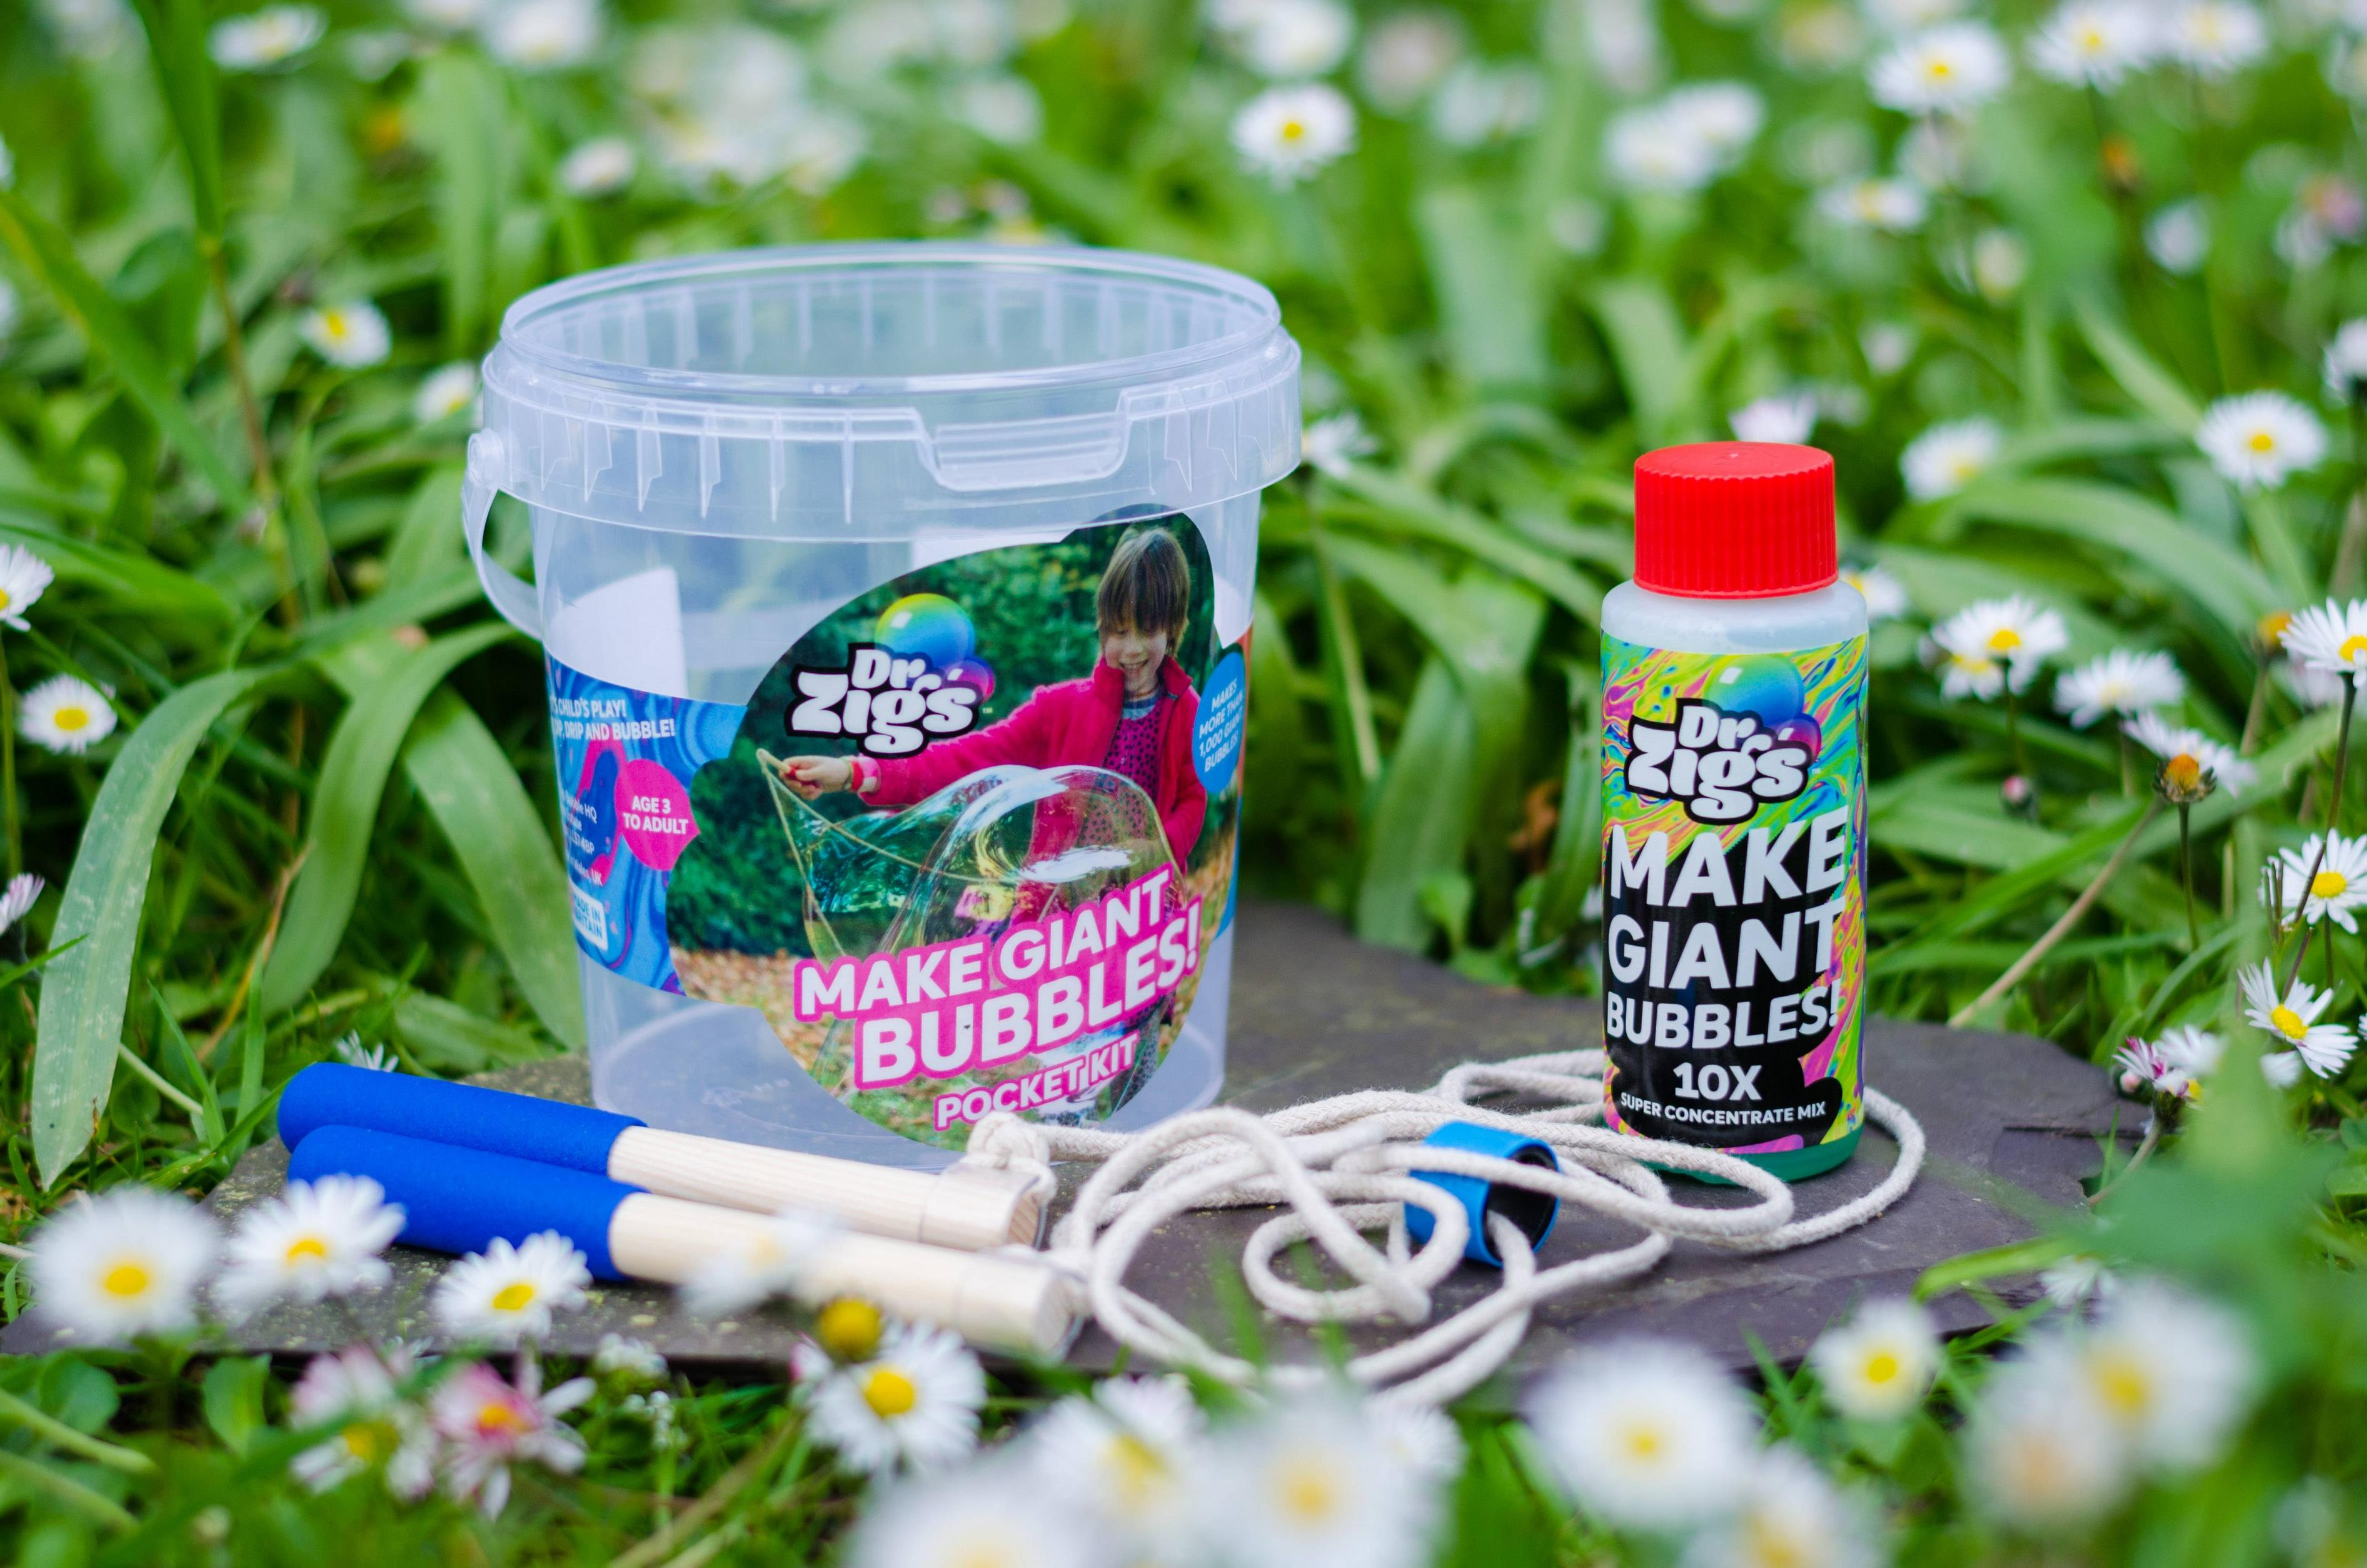 Make Giant Bubbles  - Pocket Kit - Moo Like a Monkey